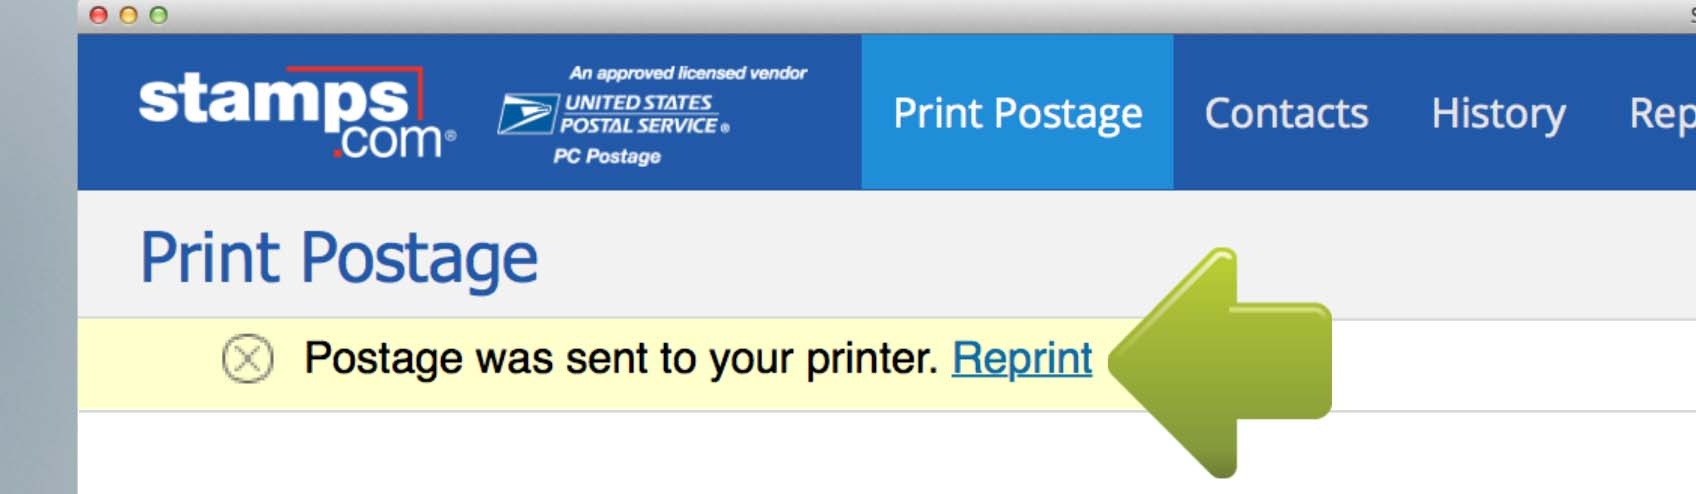 How to print envelopes with postage